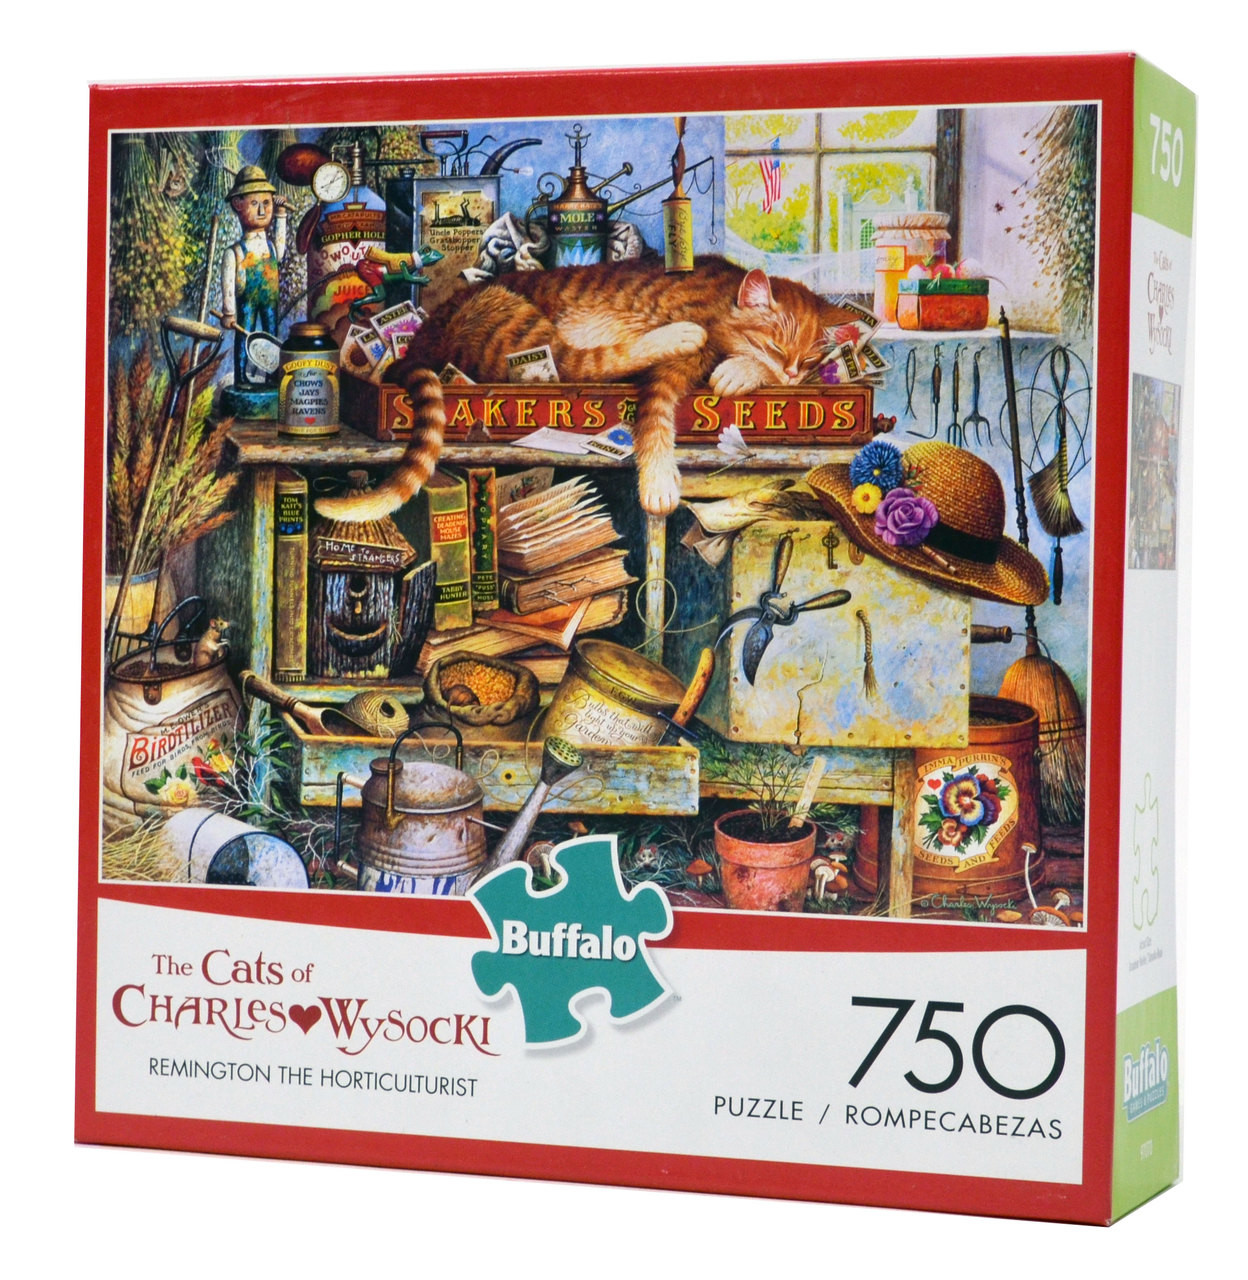 Remington The Horticulturist Wholesale Puzzles